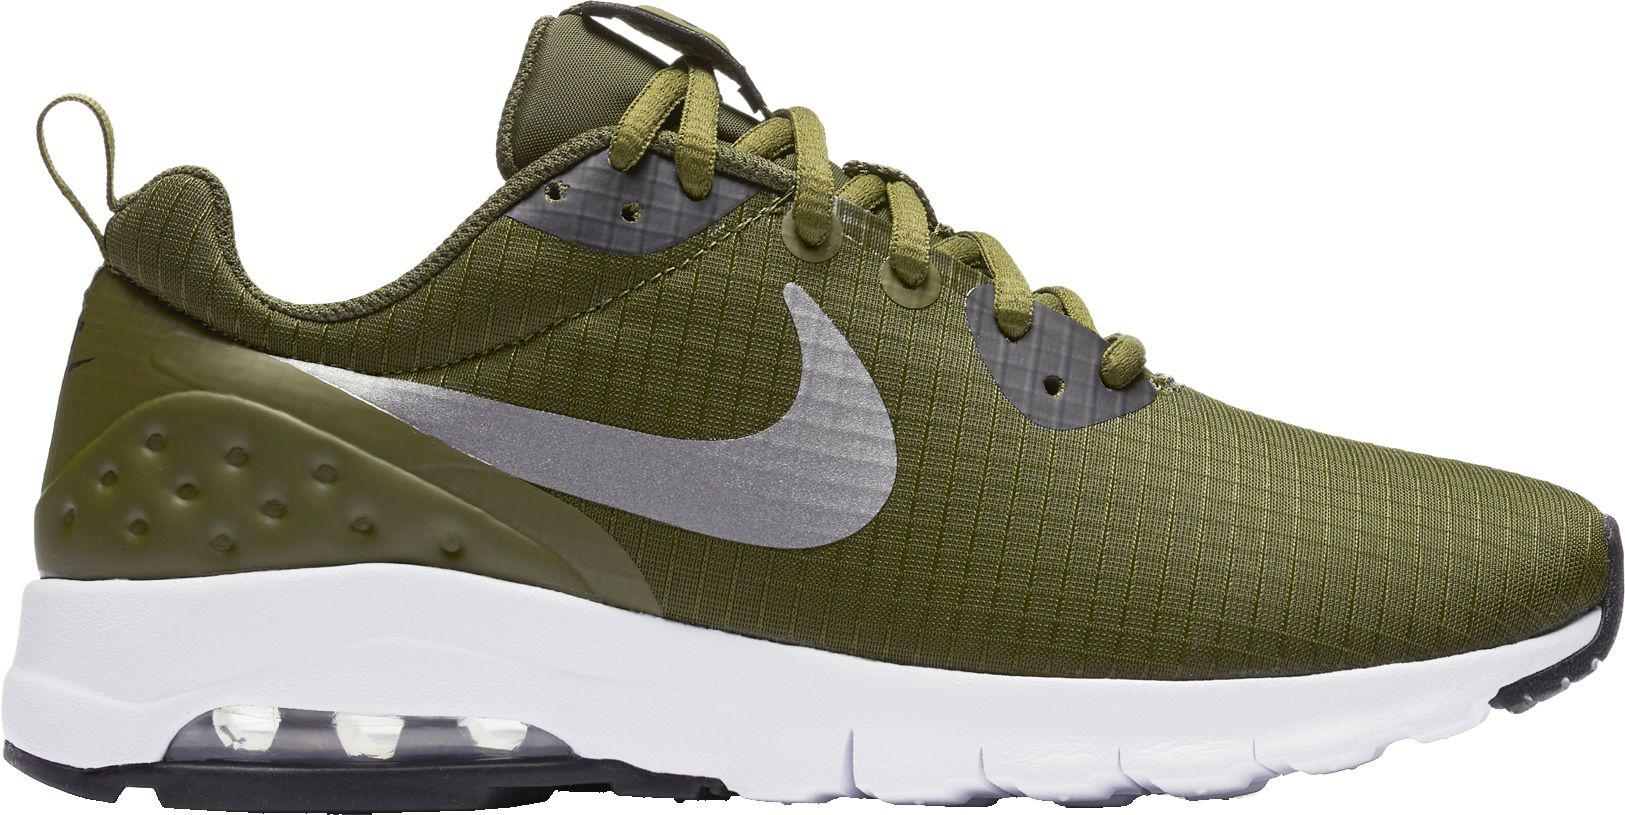 detailed pictures 892ae 2c0a0 ... canada lyst nike air max motion low se shoes in green for men cdd2a  01fd1